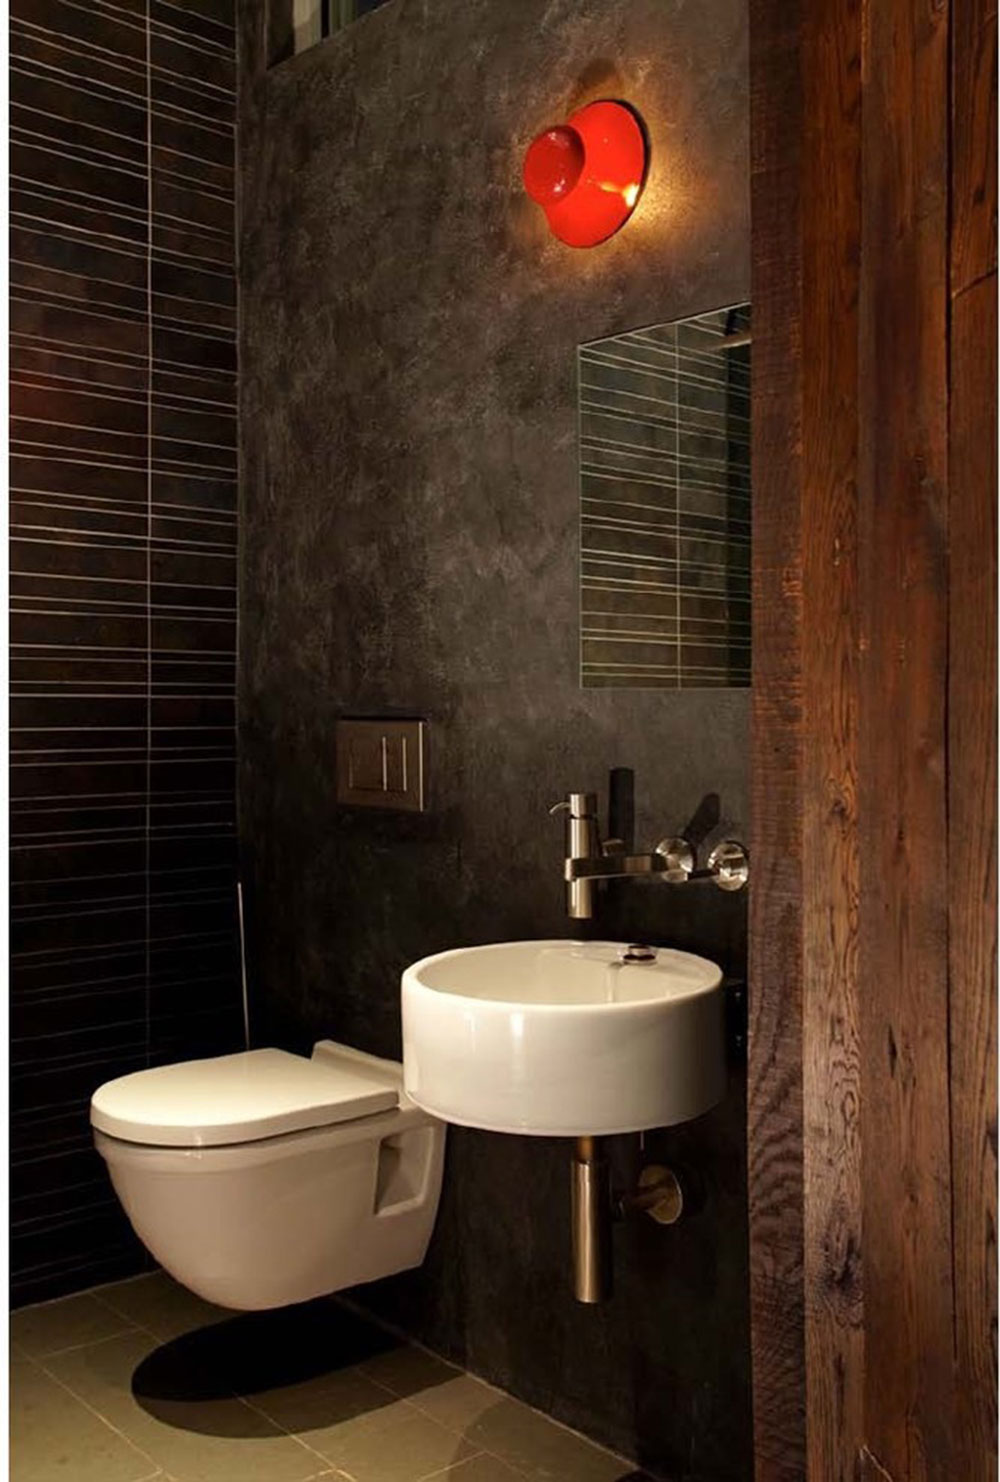 For-more-room-use-wall-wall-toilet-4-wall-toilet-ideas